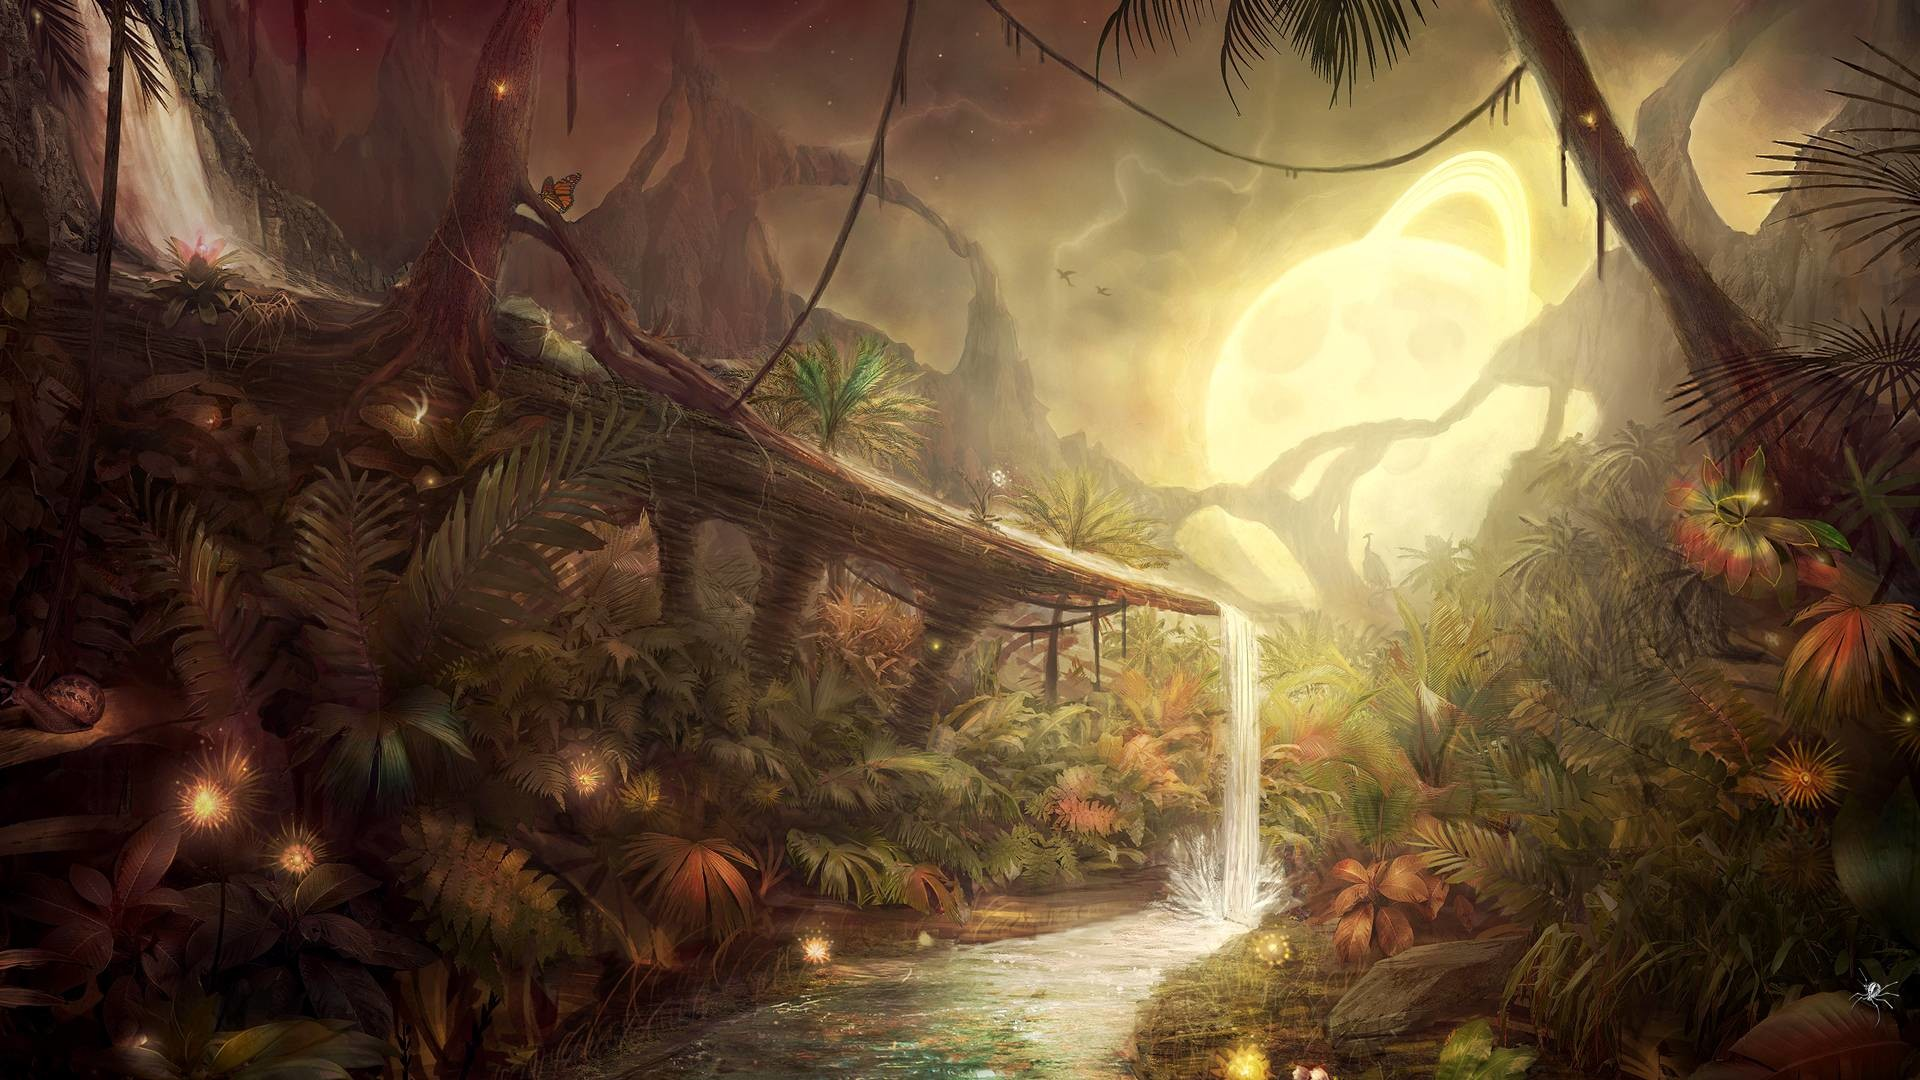 fantasy hd wallpapers 1920x1080 ·①